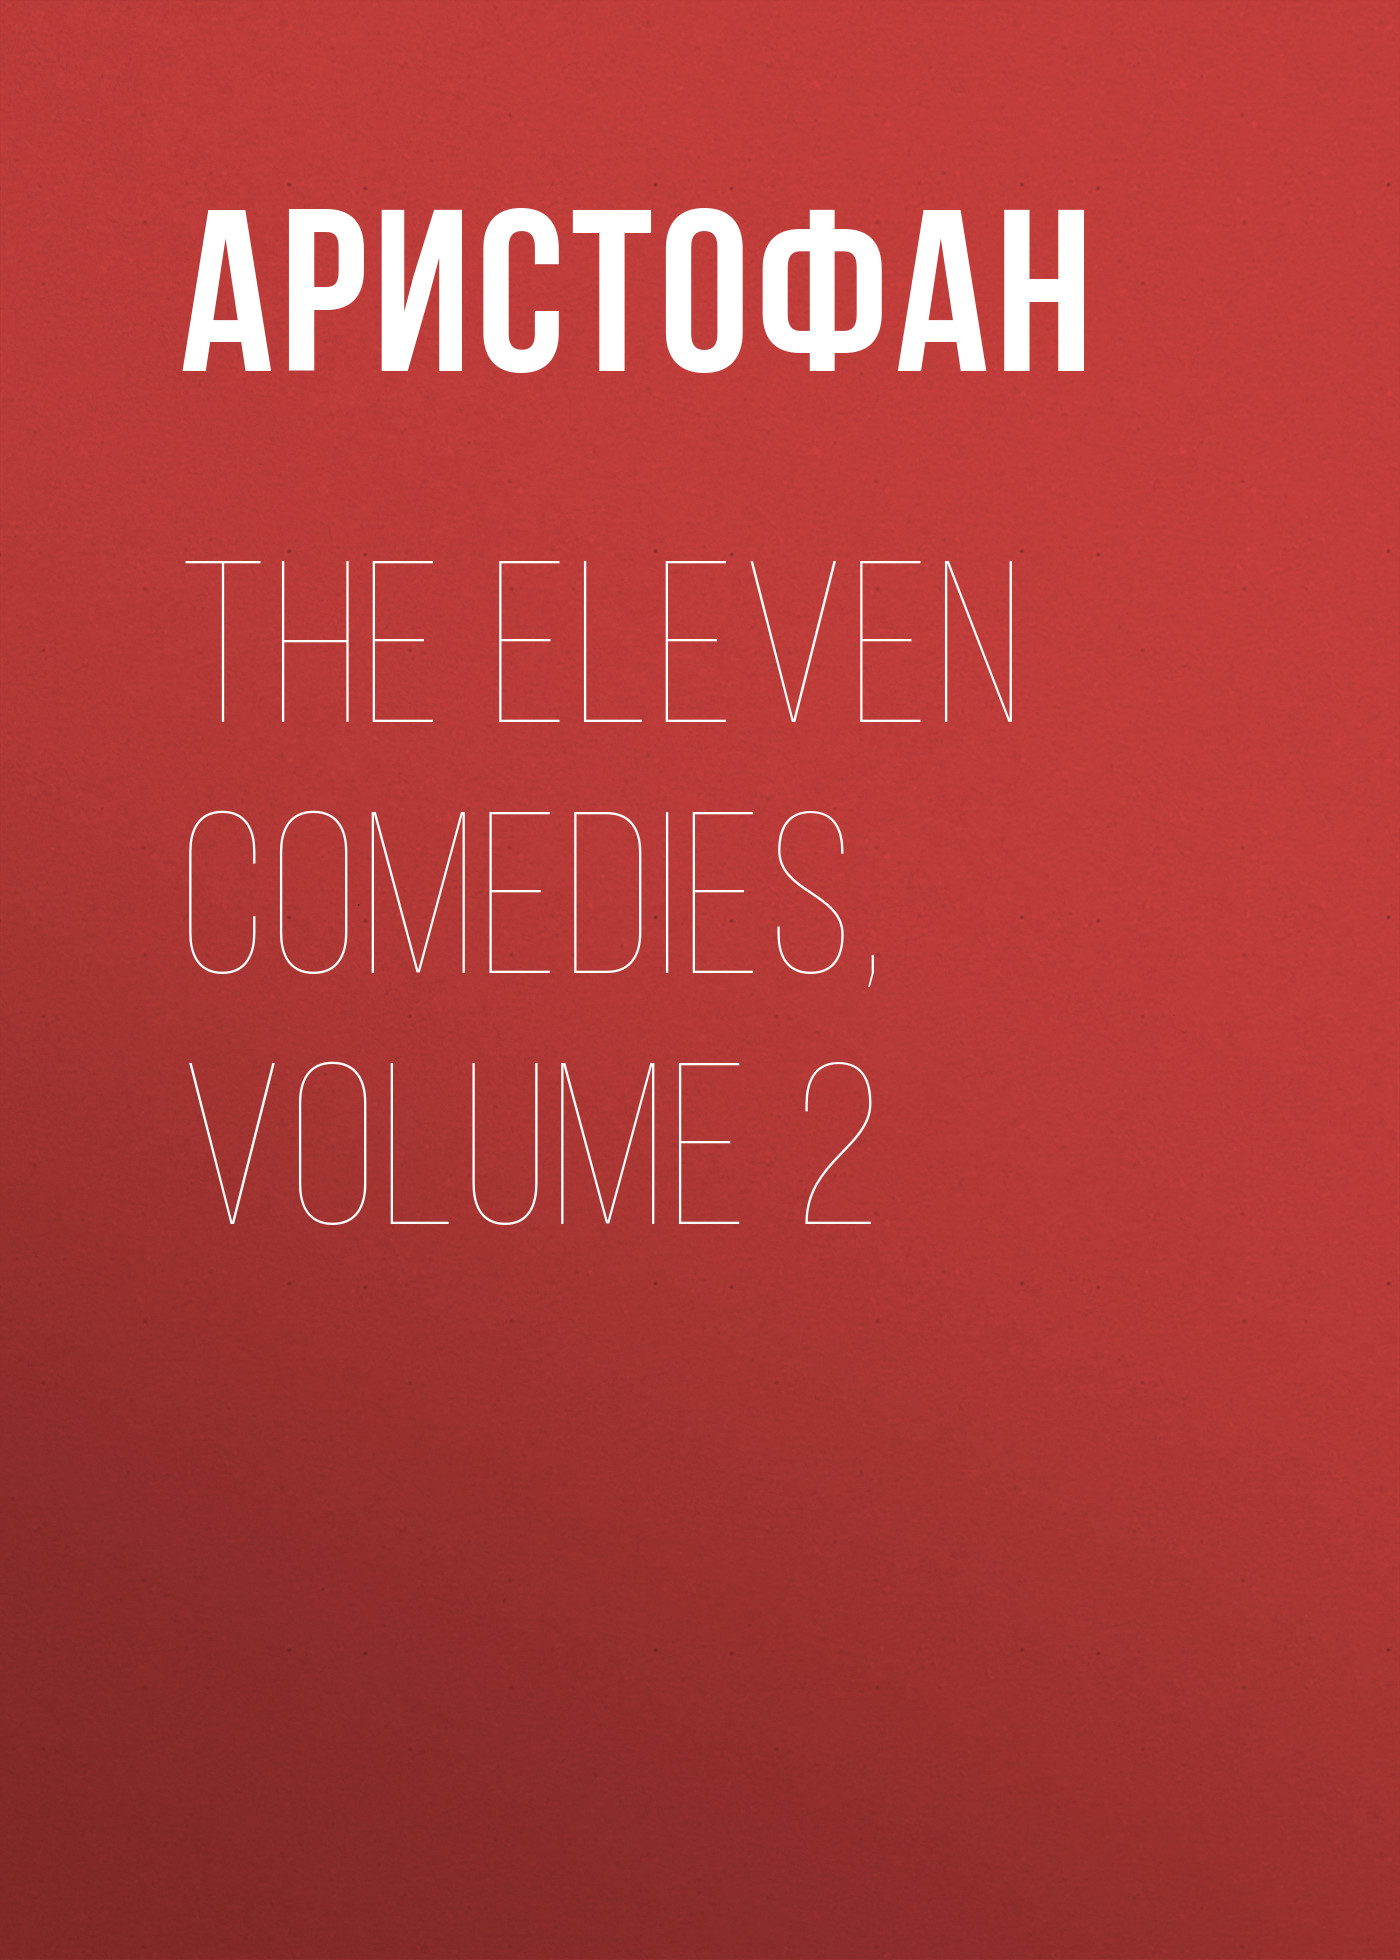 Аристофан The Eleven Comedies, Volume 2 цена